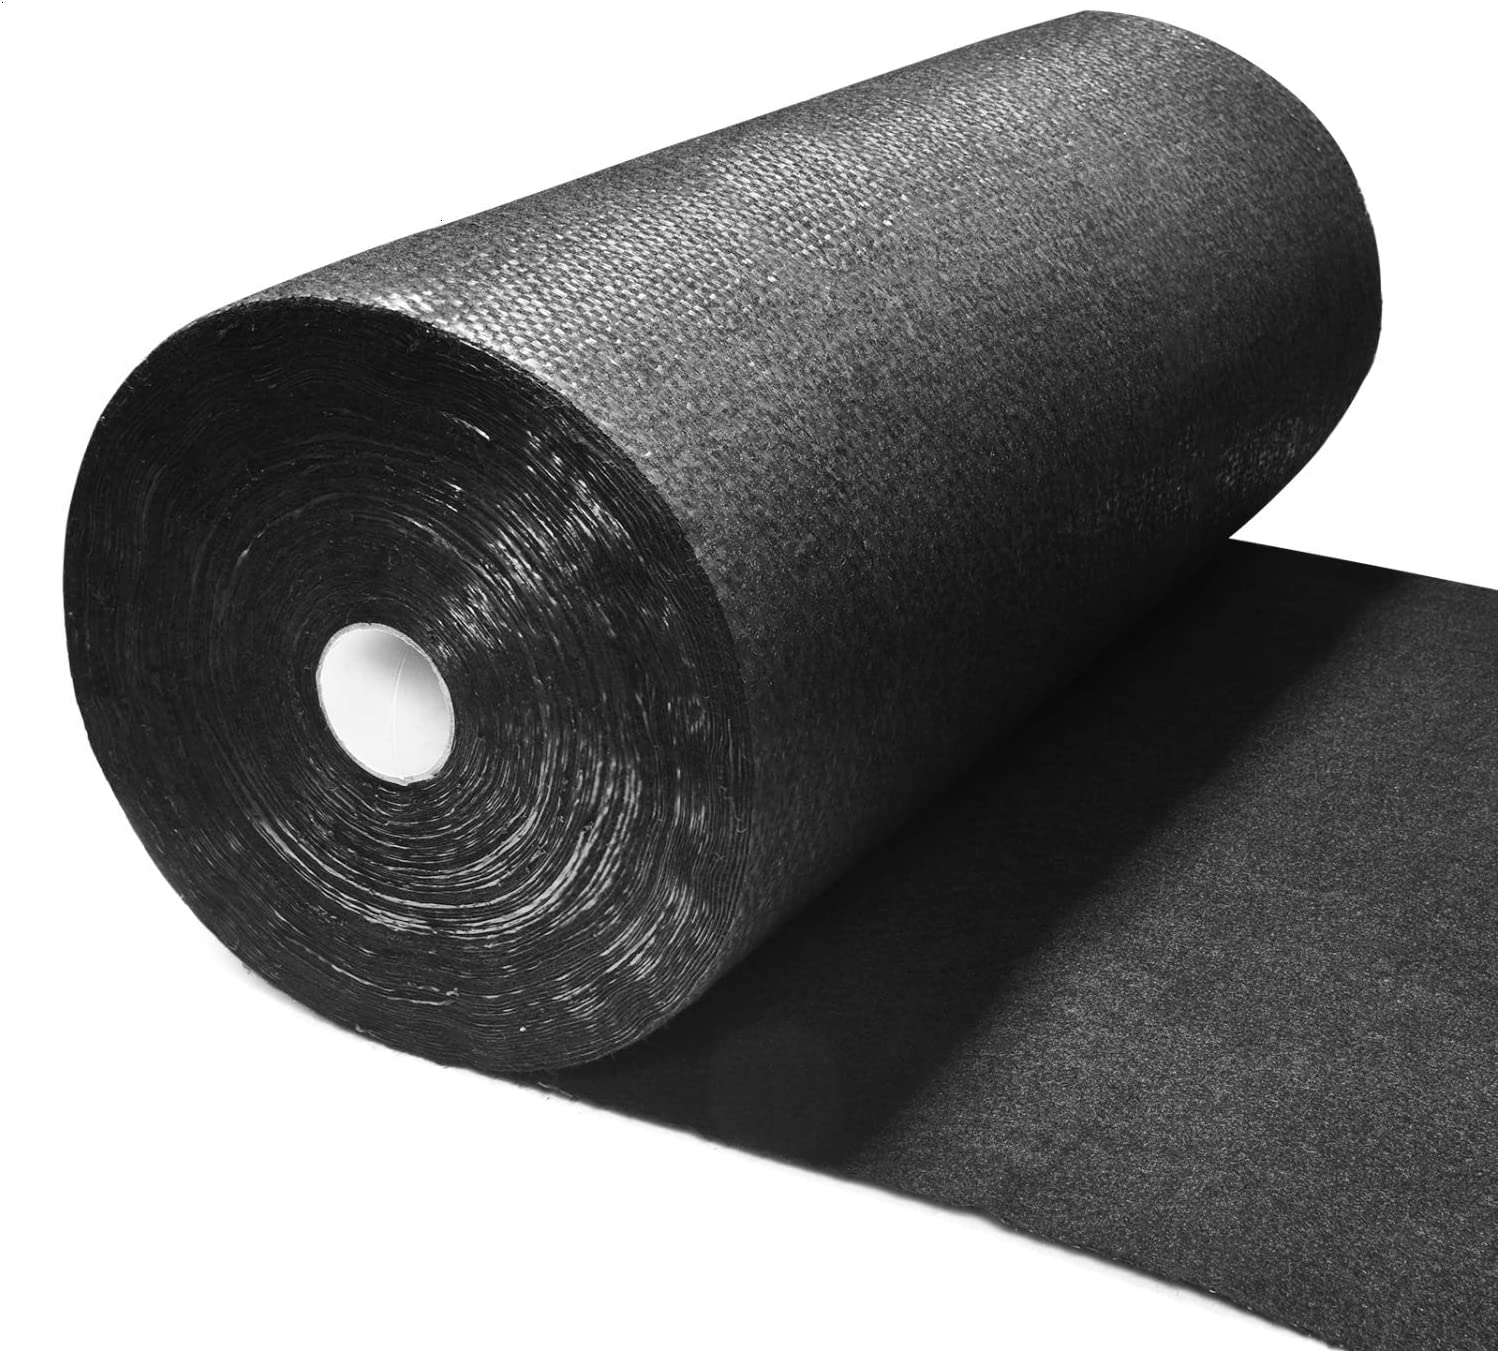 Pomeat Weed Barrier Landscape Fabric Heavy Duty, Premium Pro Weed Blocker Fabric, Durable & Superior Weeds Control Fabric for Vegetable Gardens, Flower Bed, Mulch, Pavers, Driveway 1.4 X 100FT Black